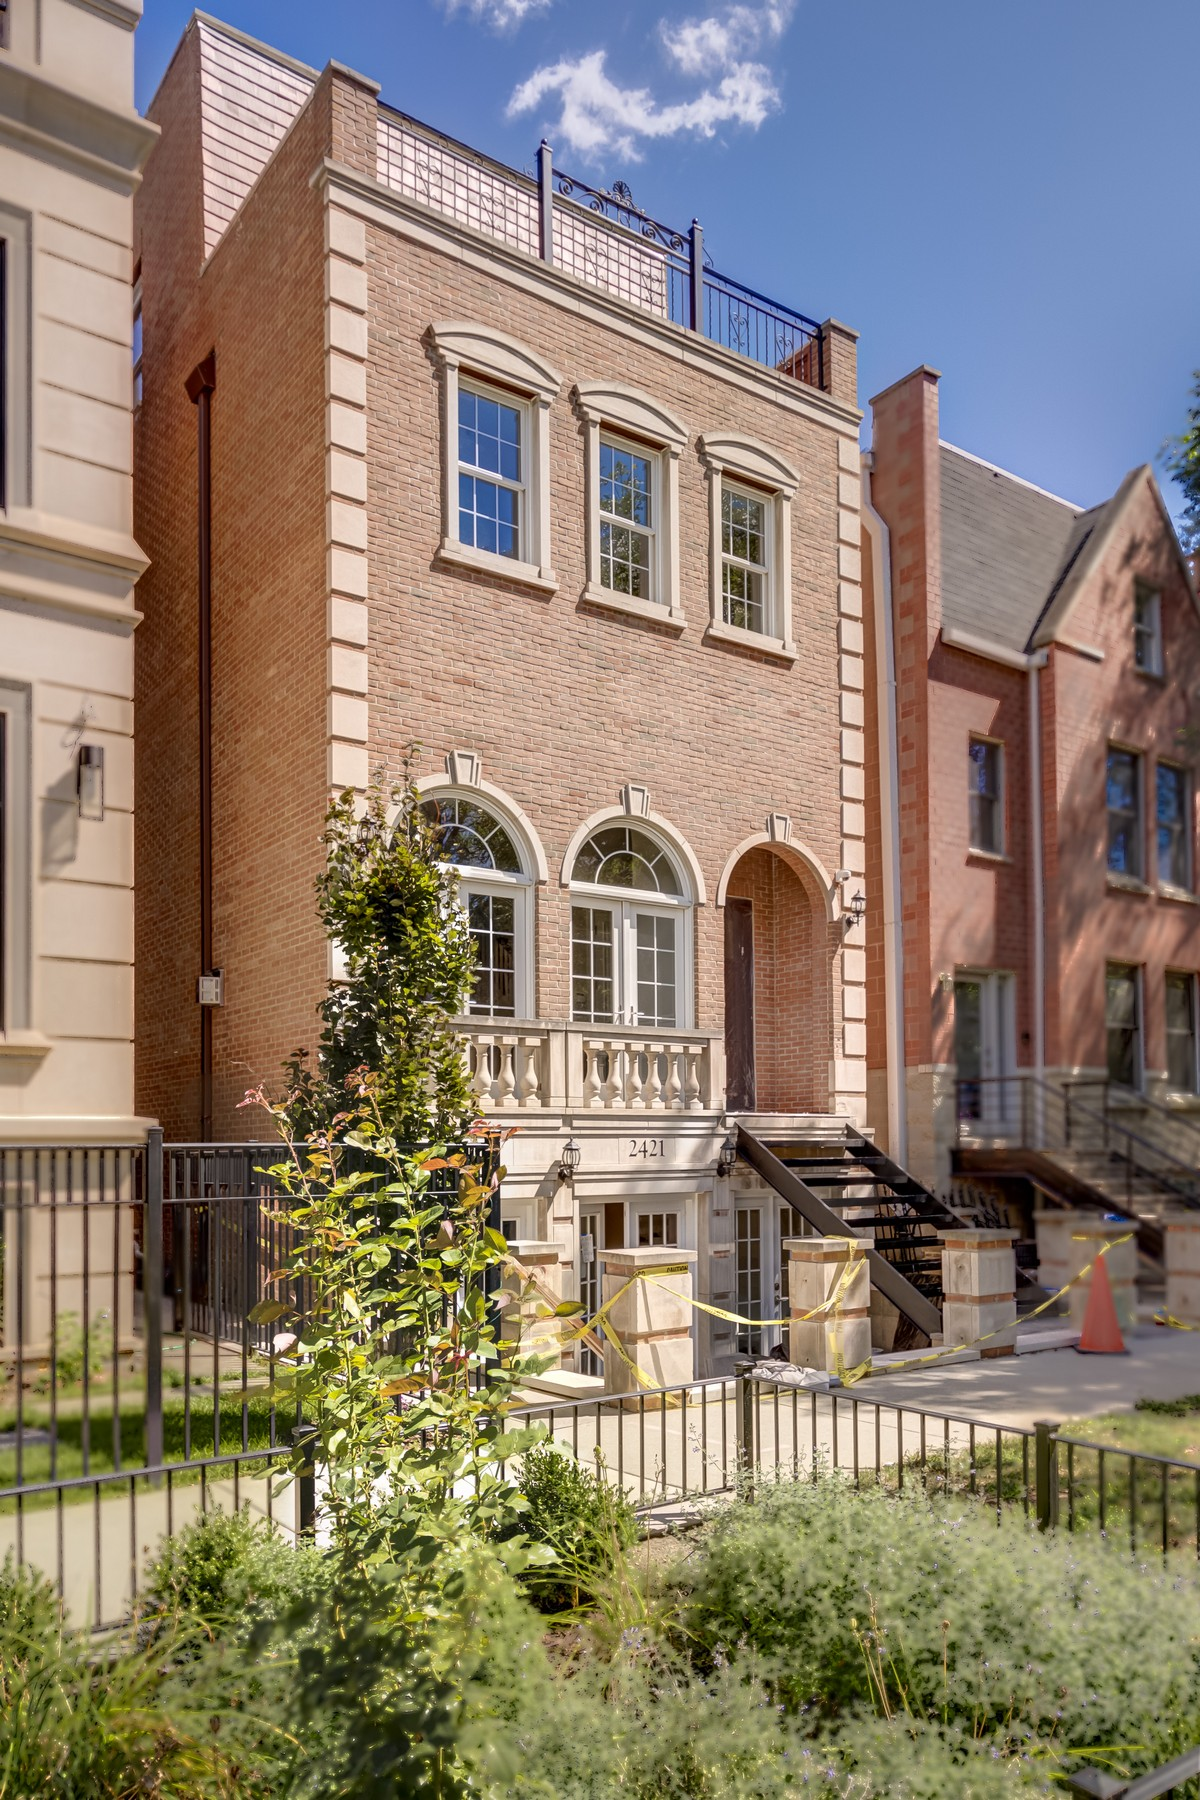 Single Family Home for Sale at Spectacular Fully Remodeled Home In Lincoln Park 2421 N Janssen Avenue Lincoln Park, Chicago, Illinois 60614 United States